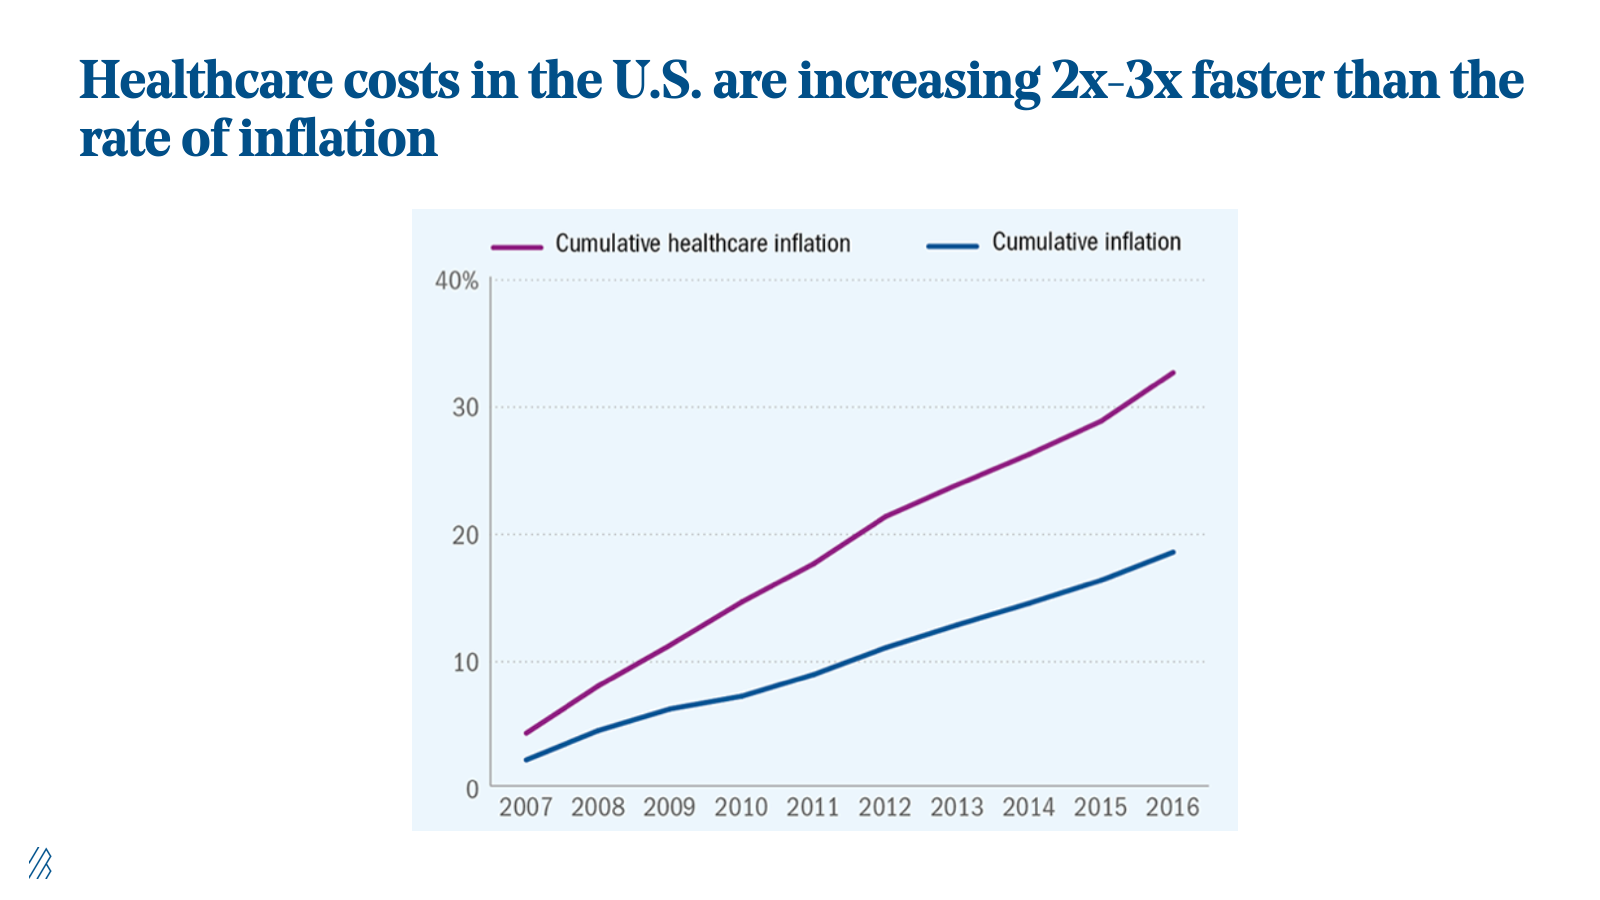 Healthcare costs in the U.S. are increasing 2x-3x faster than the rate of inflation.